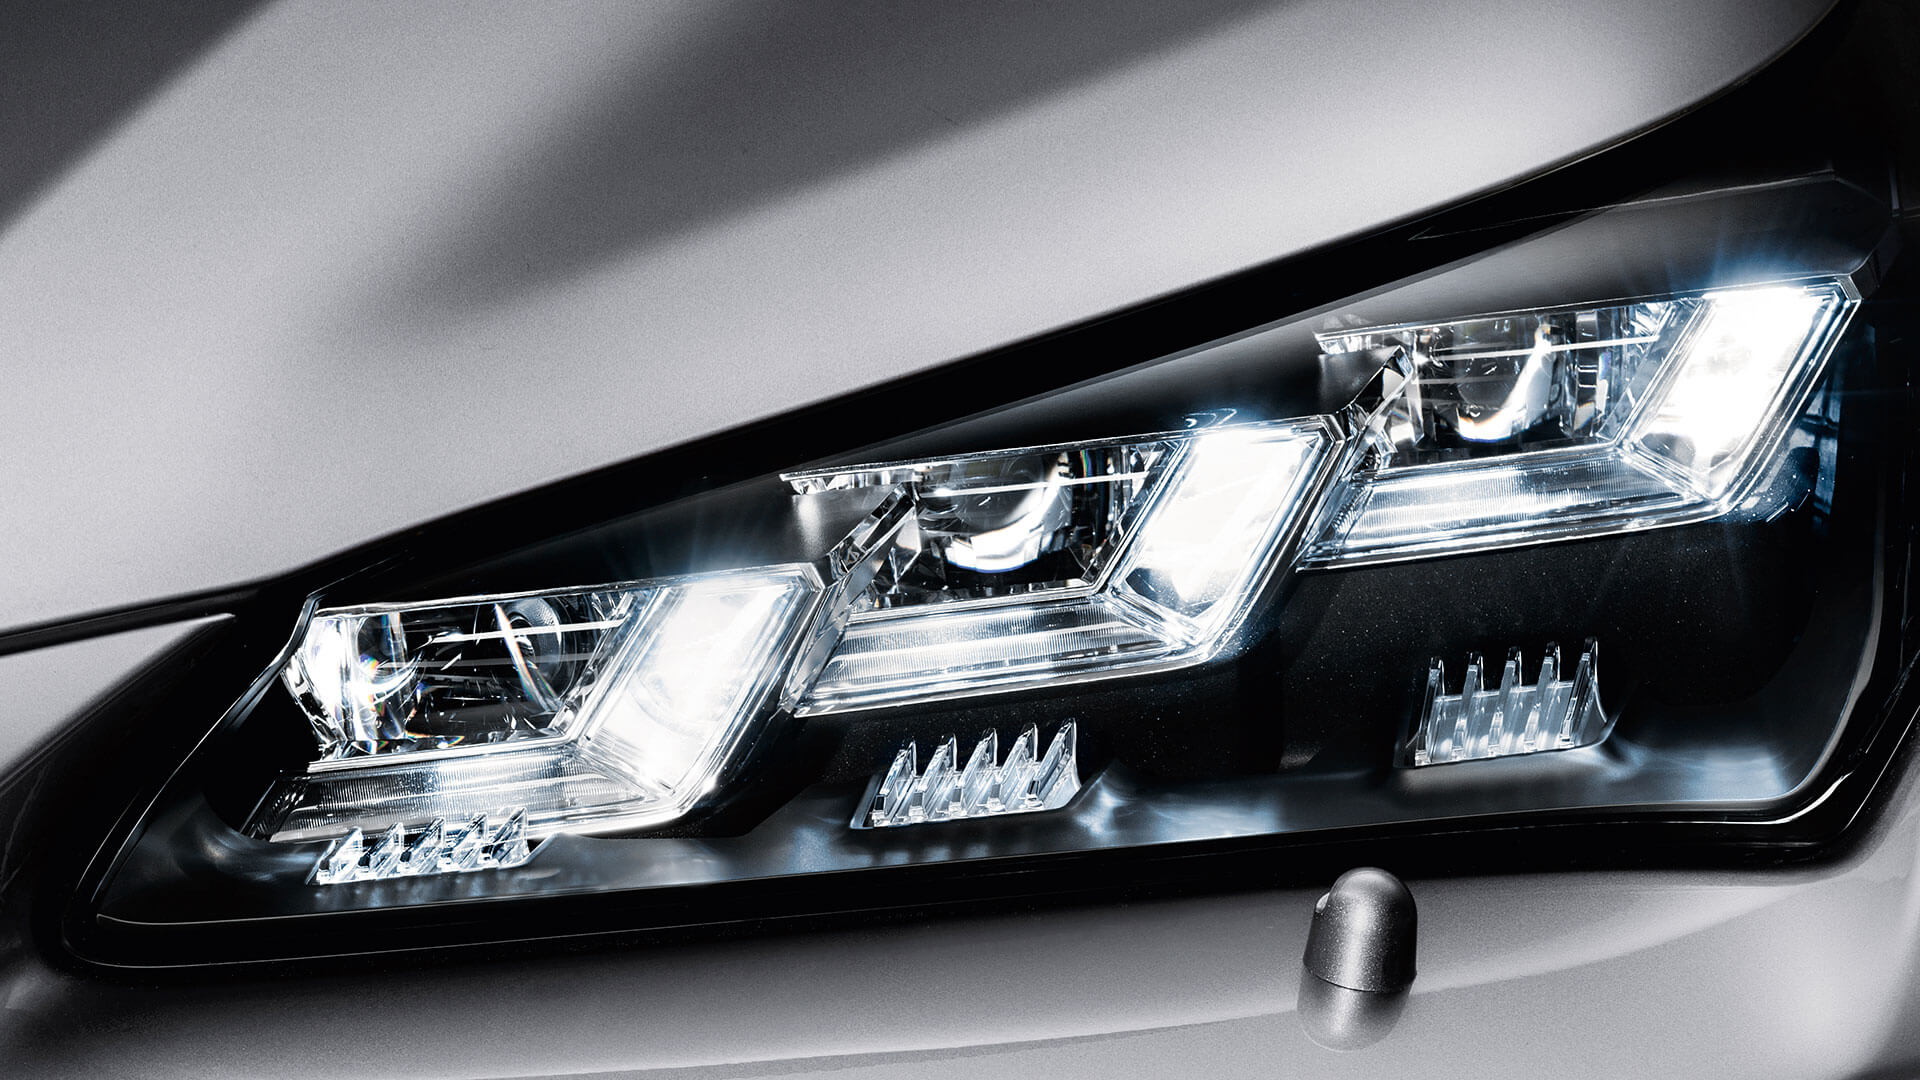 2017 lexus nx 300h features automatic high beam